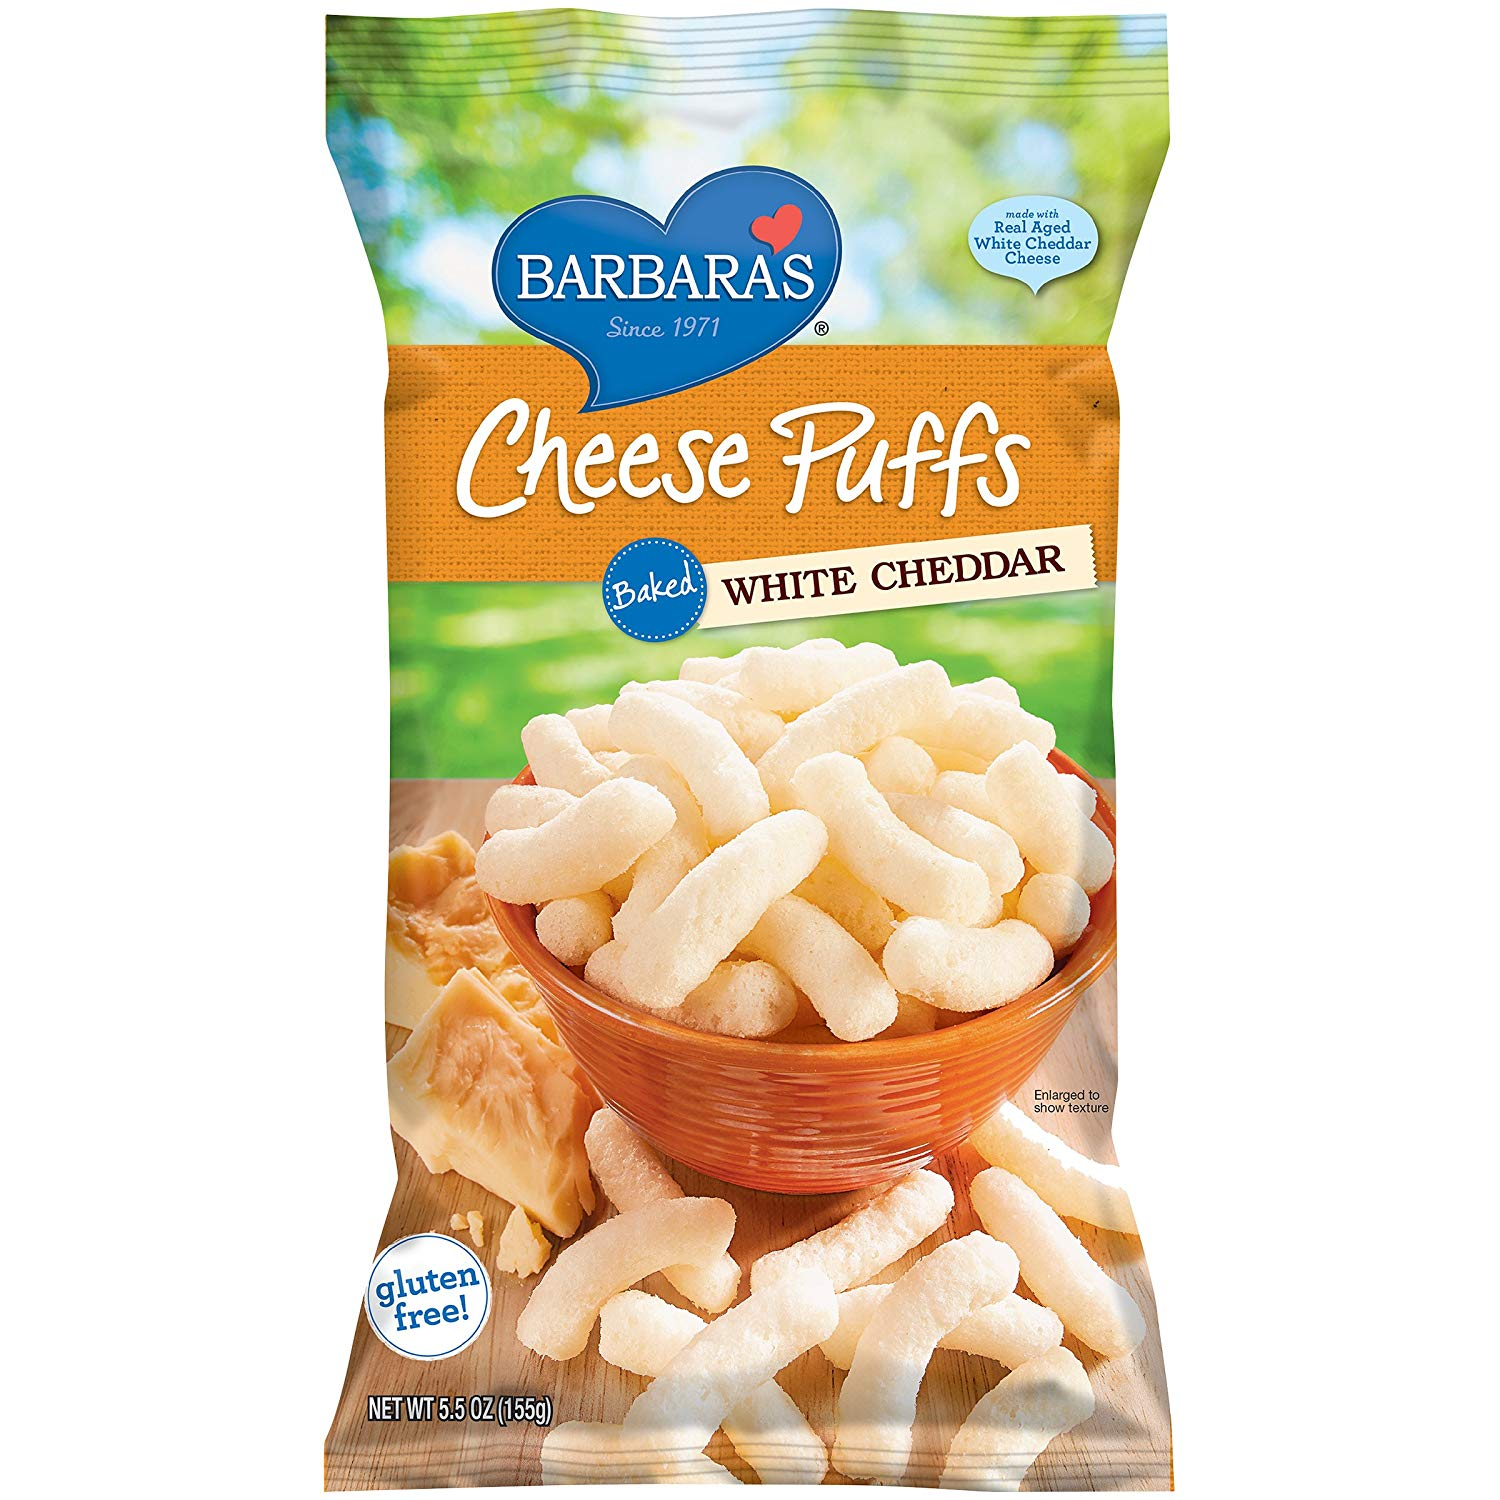 Barbara's Cheese Puffs Baked White Cheddar. These irresistible and light as air gluten-free cheese puffs are theperfect sidekick to any kids holiday party table – made with real cheeses and Non-GMO stone-ground corn, and no hydrogenated oils or synthetic growth hormones.